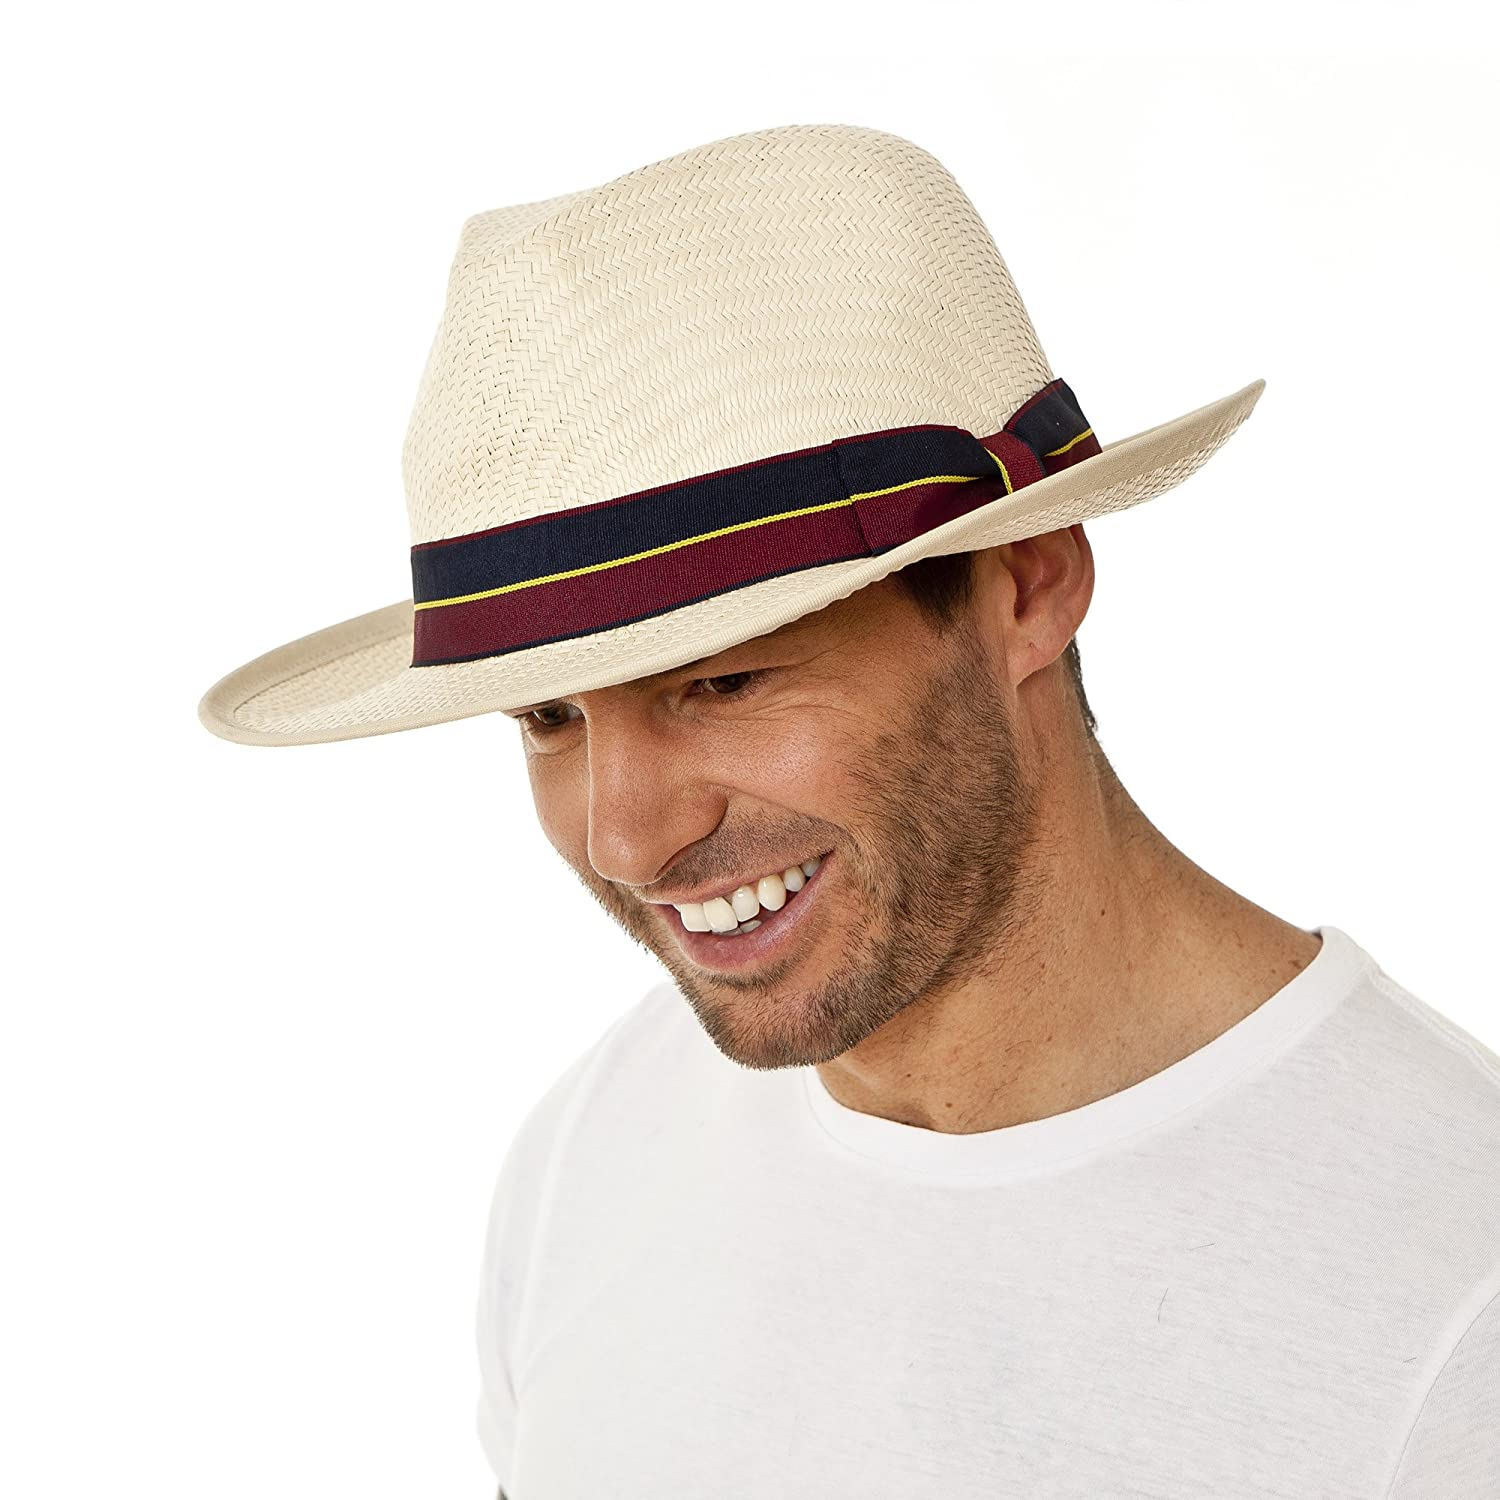 i-Smalls Men's Summer Traditional Panama Hat with Military Style Band MS14120